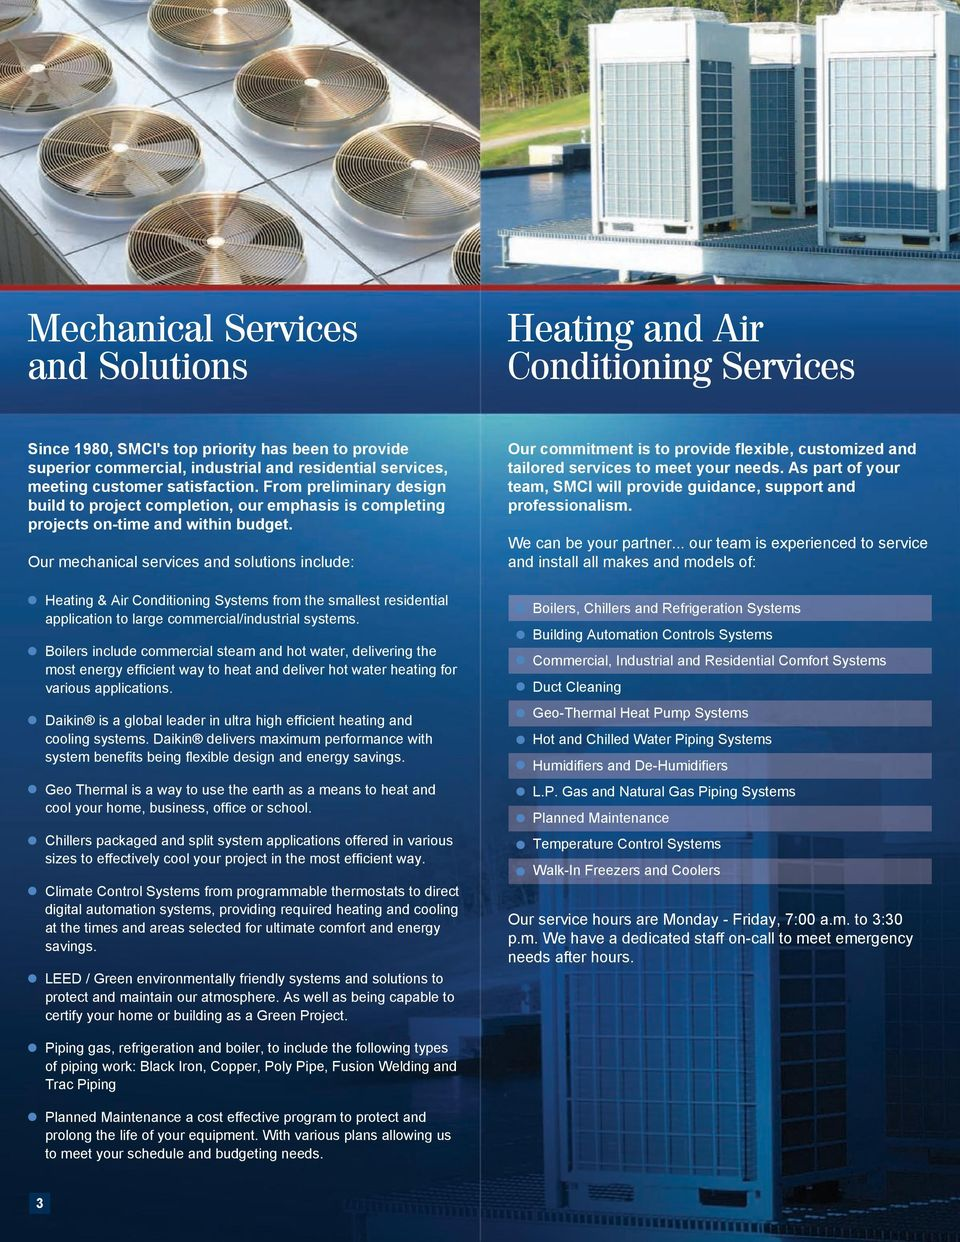 Our mechanical services and solutions include: Heating & Air Conditioning Systems from the smallest residential application to large commercial/industrial systems.